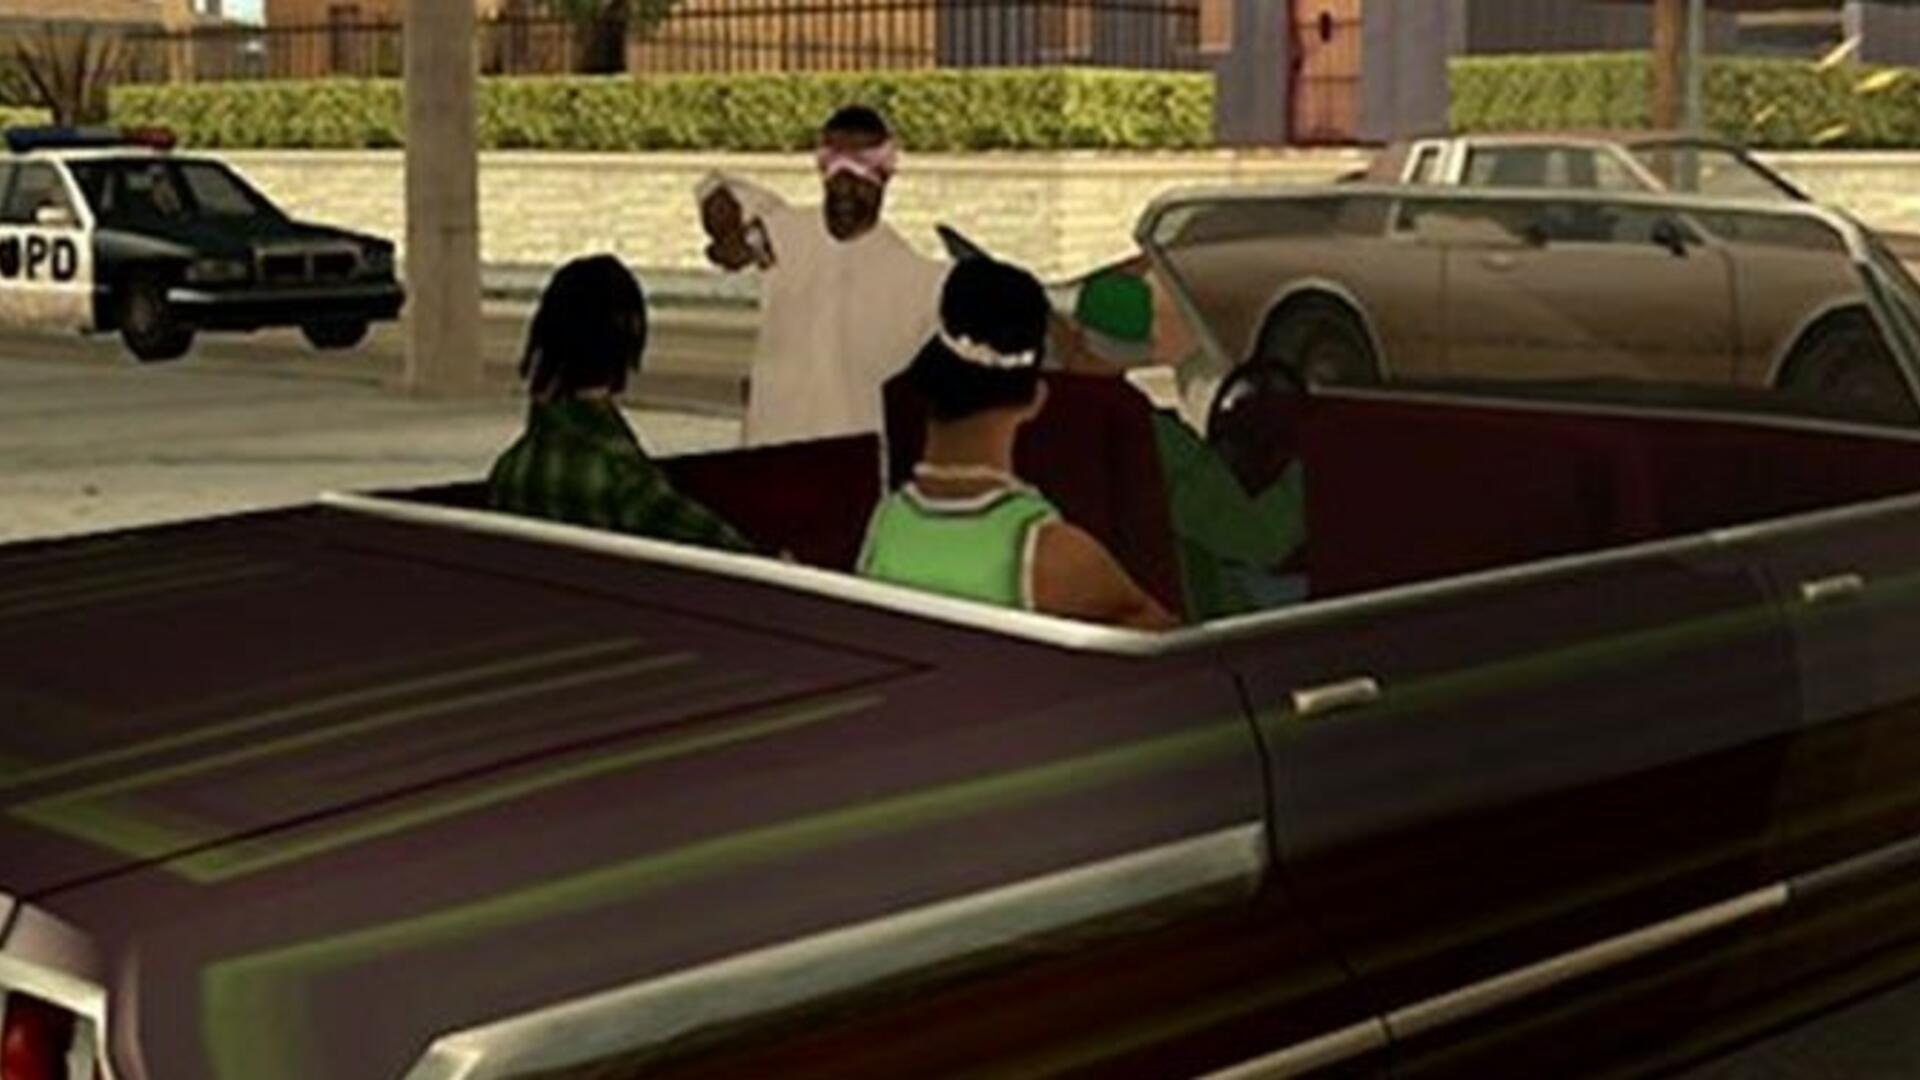 GTA San Andreas Speedrunner Loses World Record Run After Accidentally Summoning a Helicopter